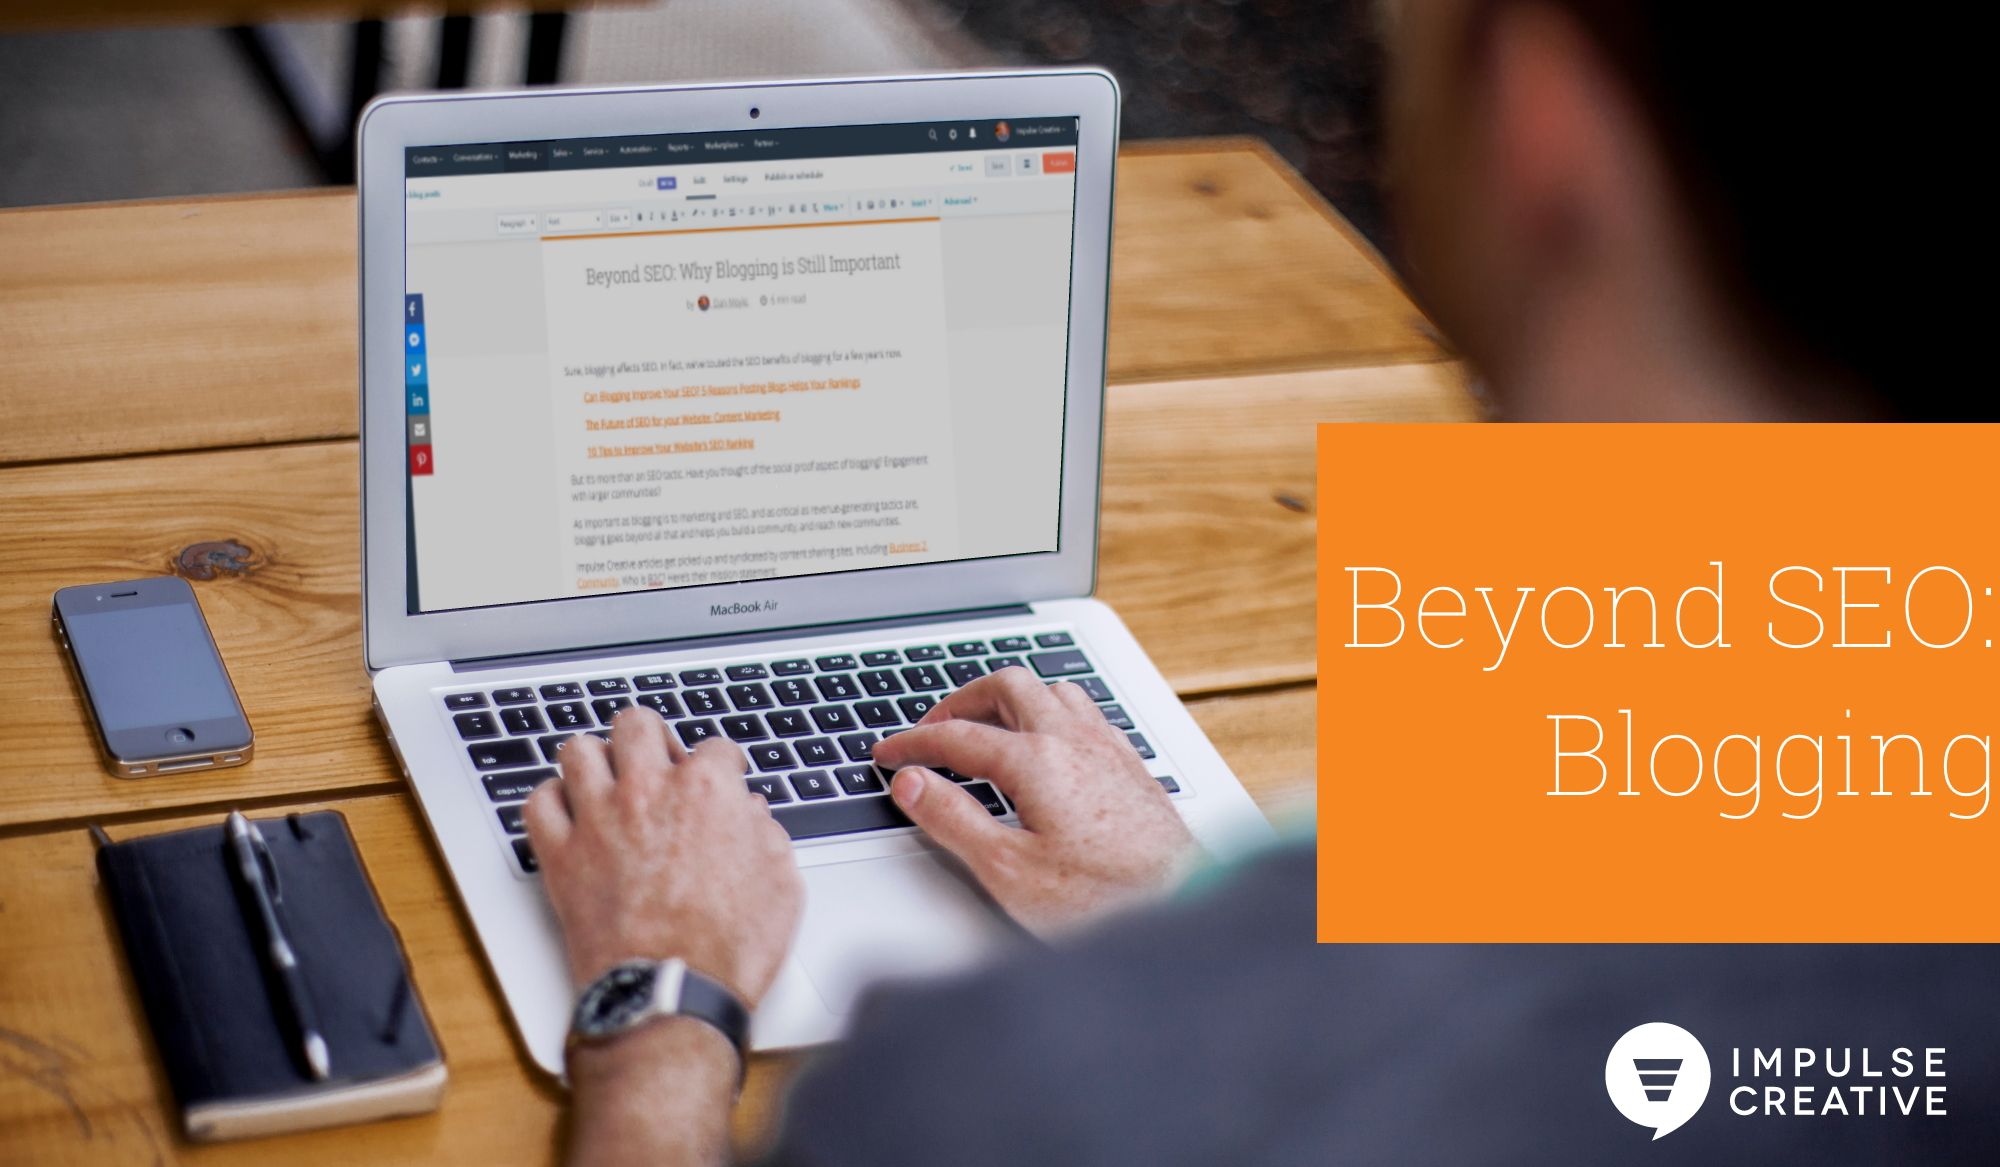 Beyond SEO: Why Blogging is Still Important